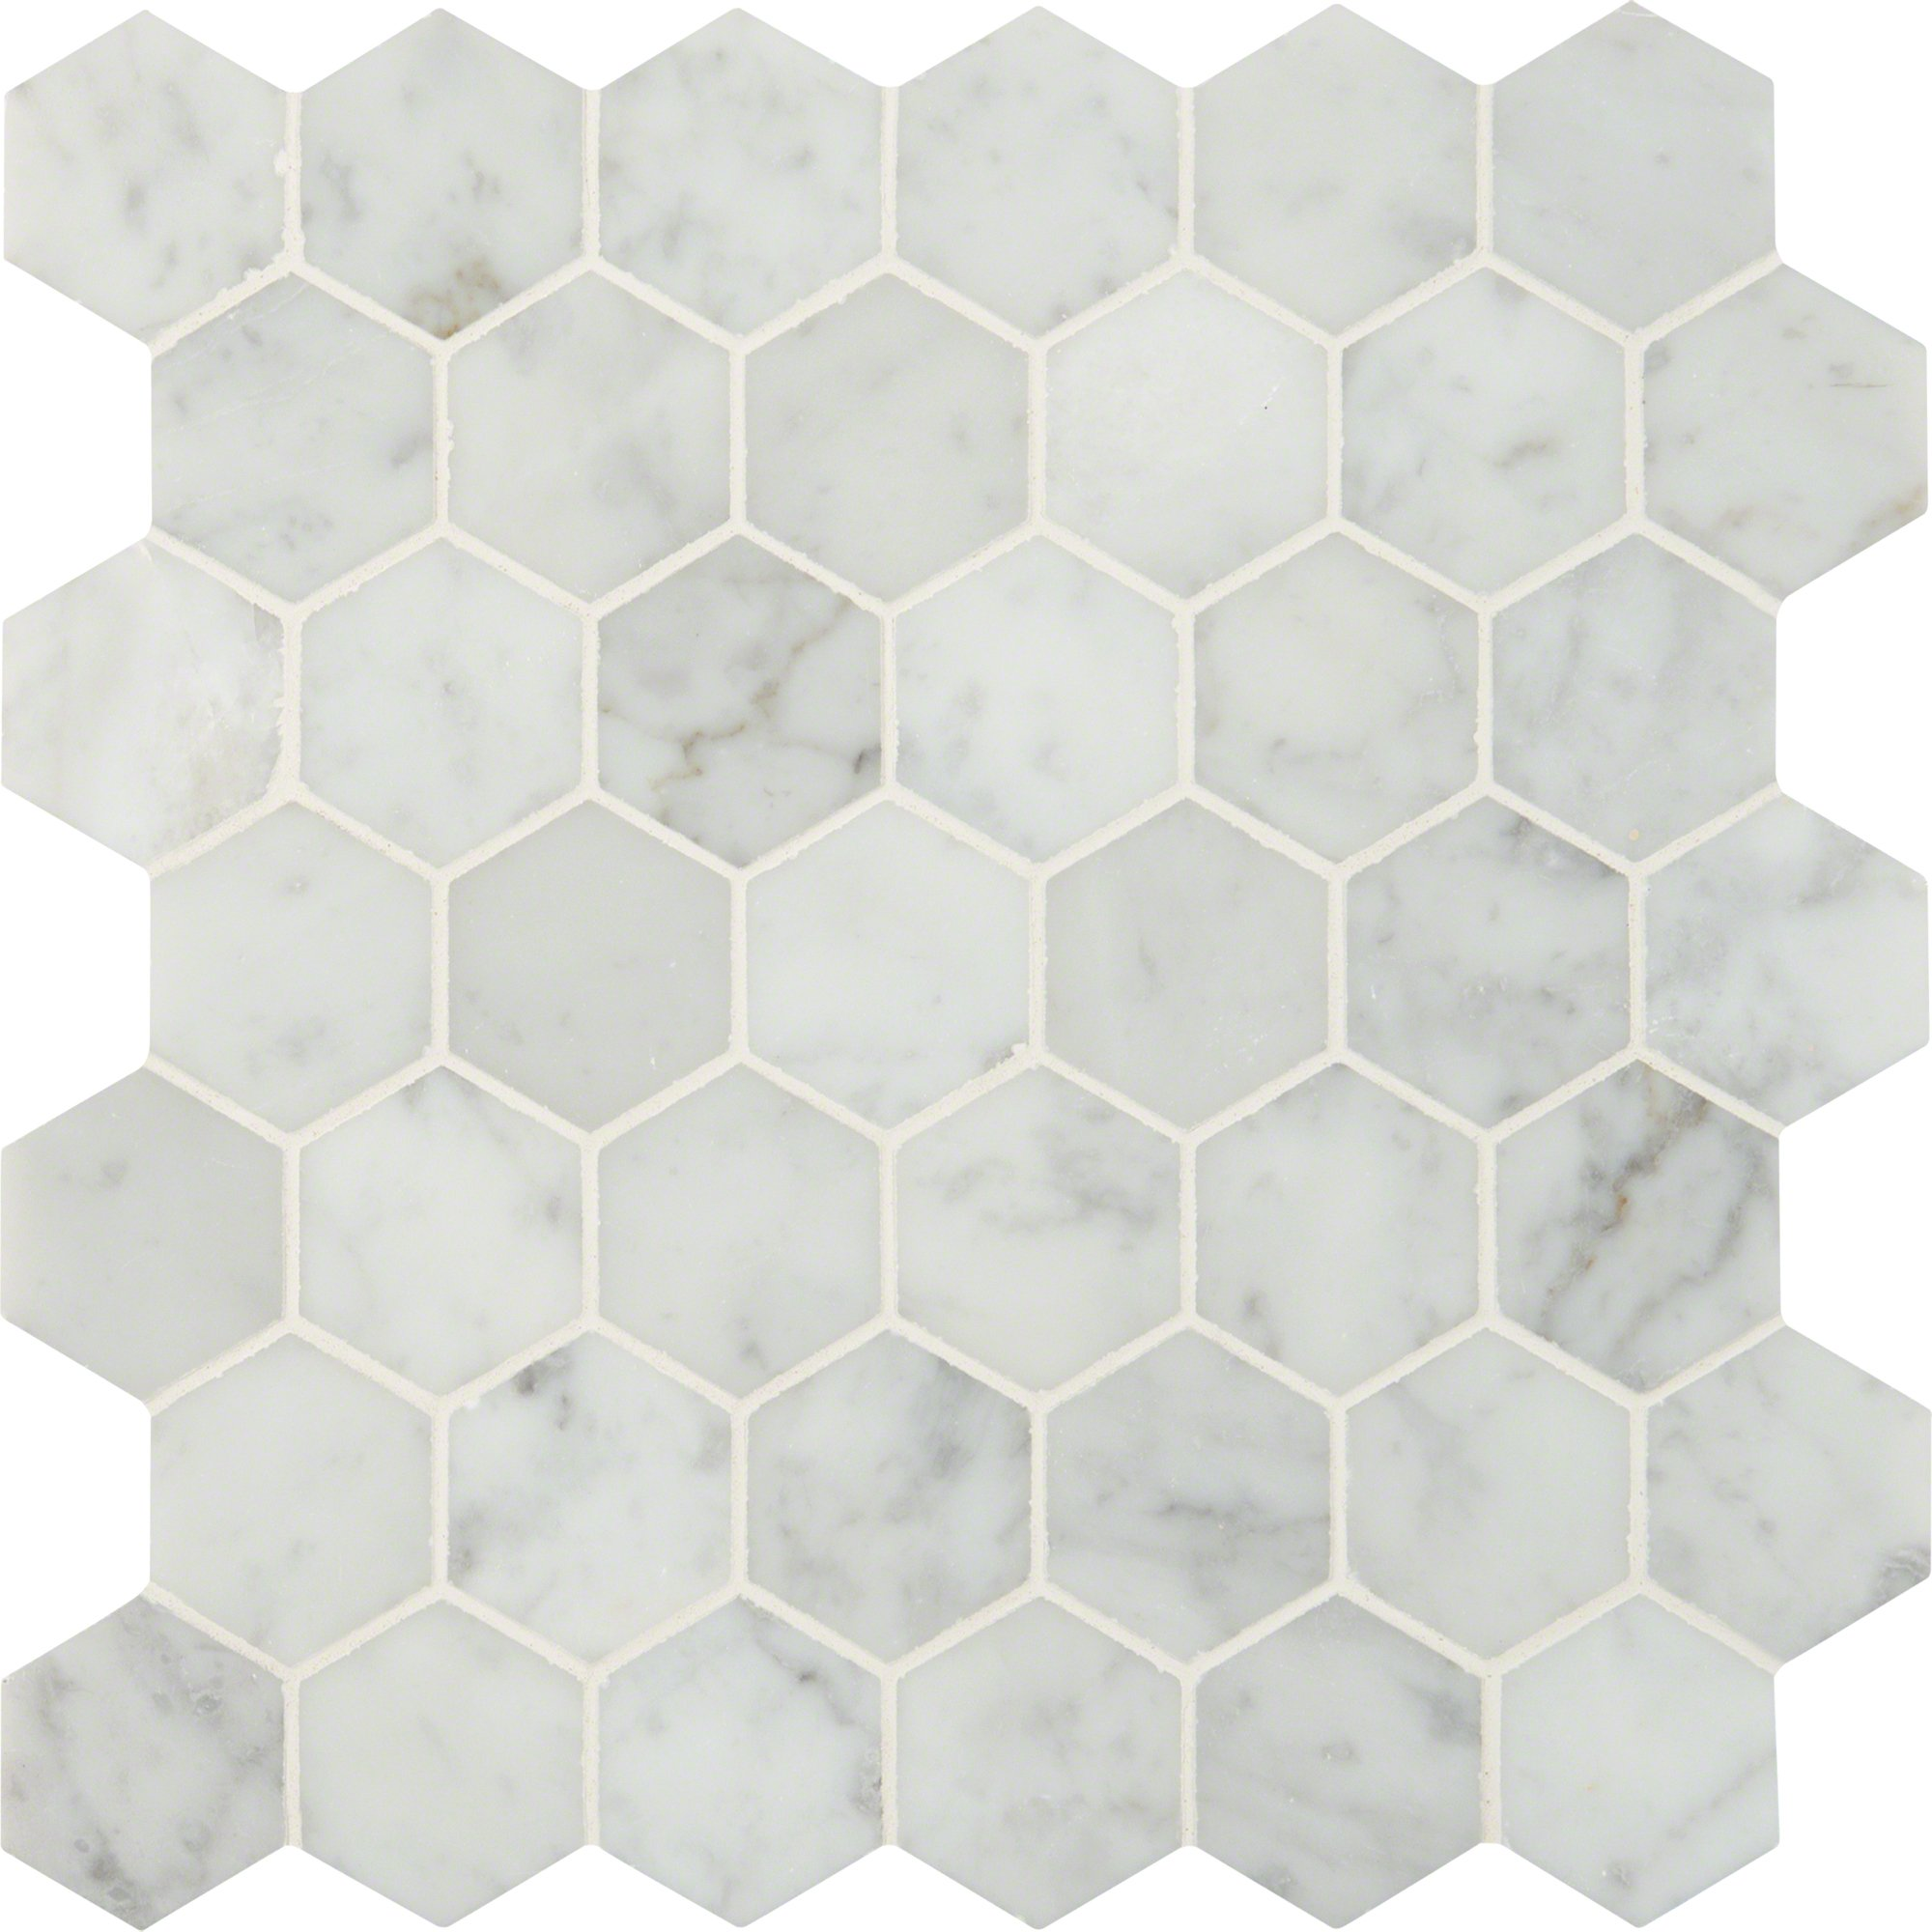 M S International Carrara White Hexagon 12 In. X 10 mm Polished Marble Mesh-Mounted Mosaic Floor & Wall Tile, (10 sq. ft., 10 pieces per case)